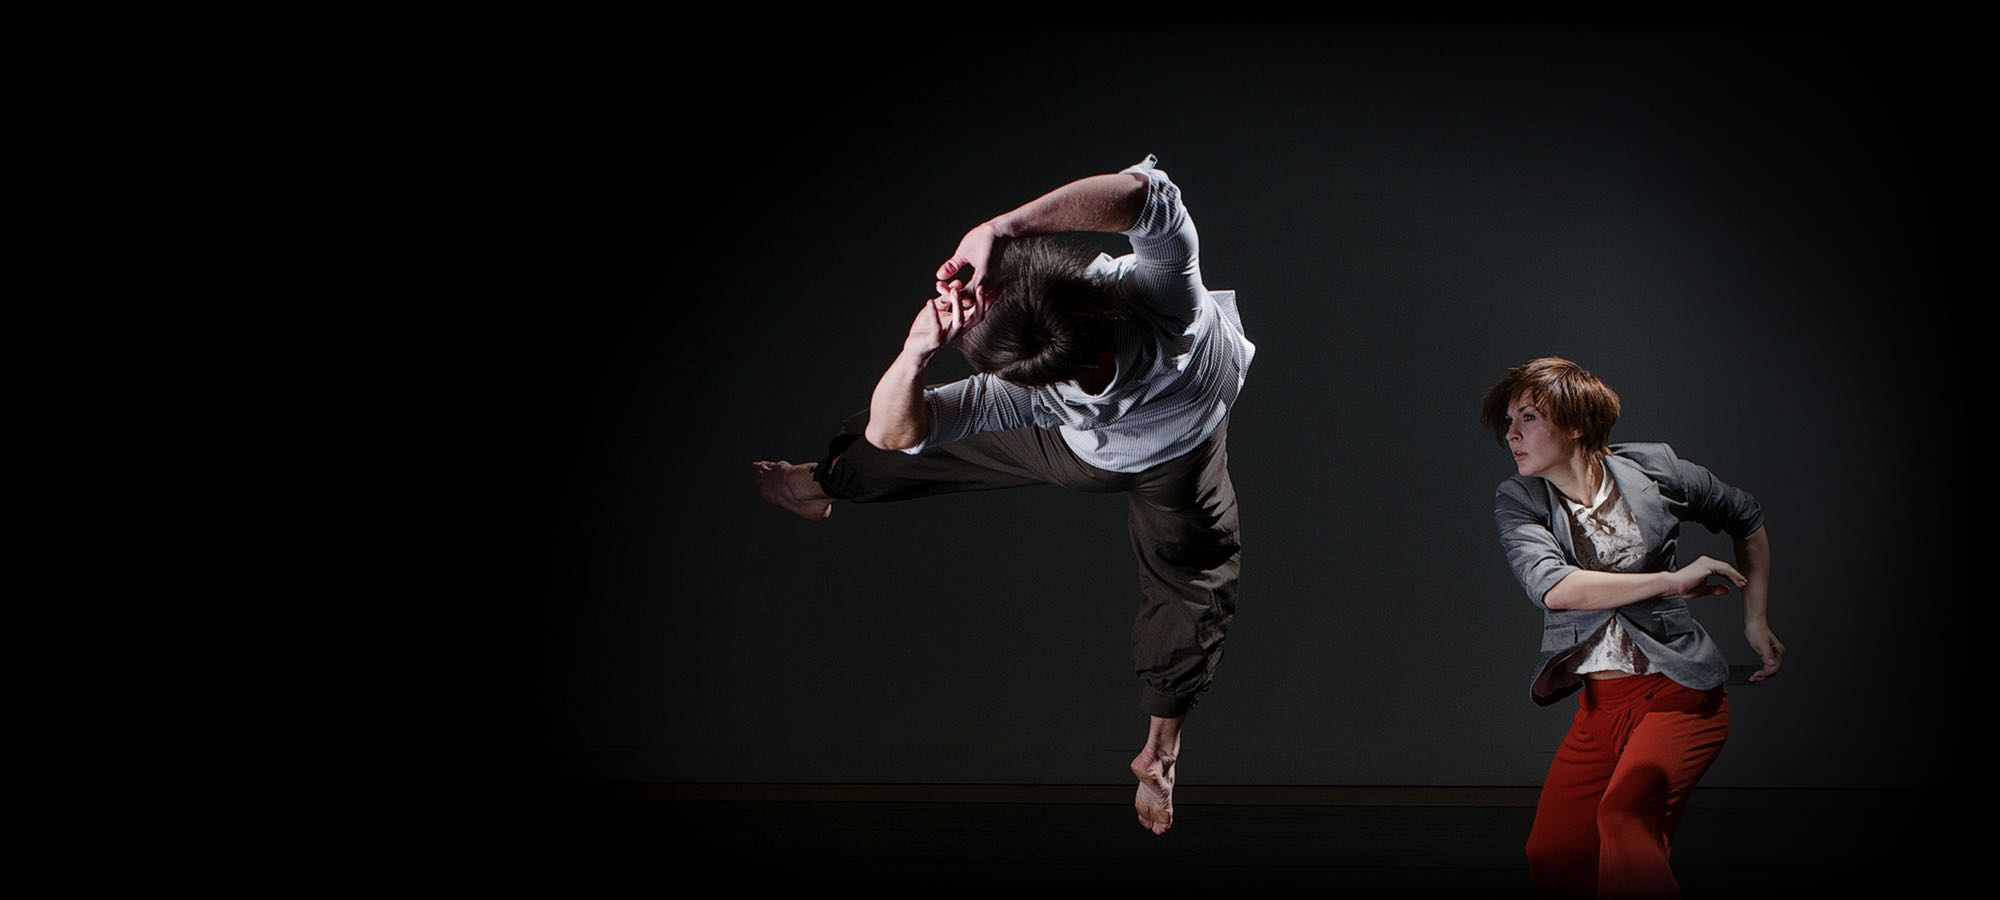 Two contemporary dancers mid movement, one leaping backwards, both legs in the air, arms behind head. The other set to leap.